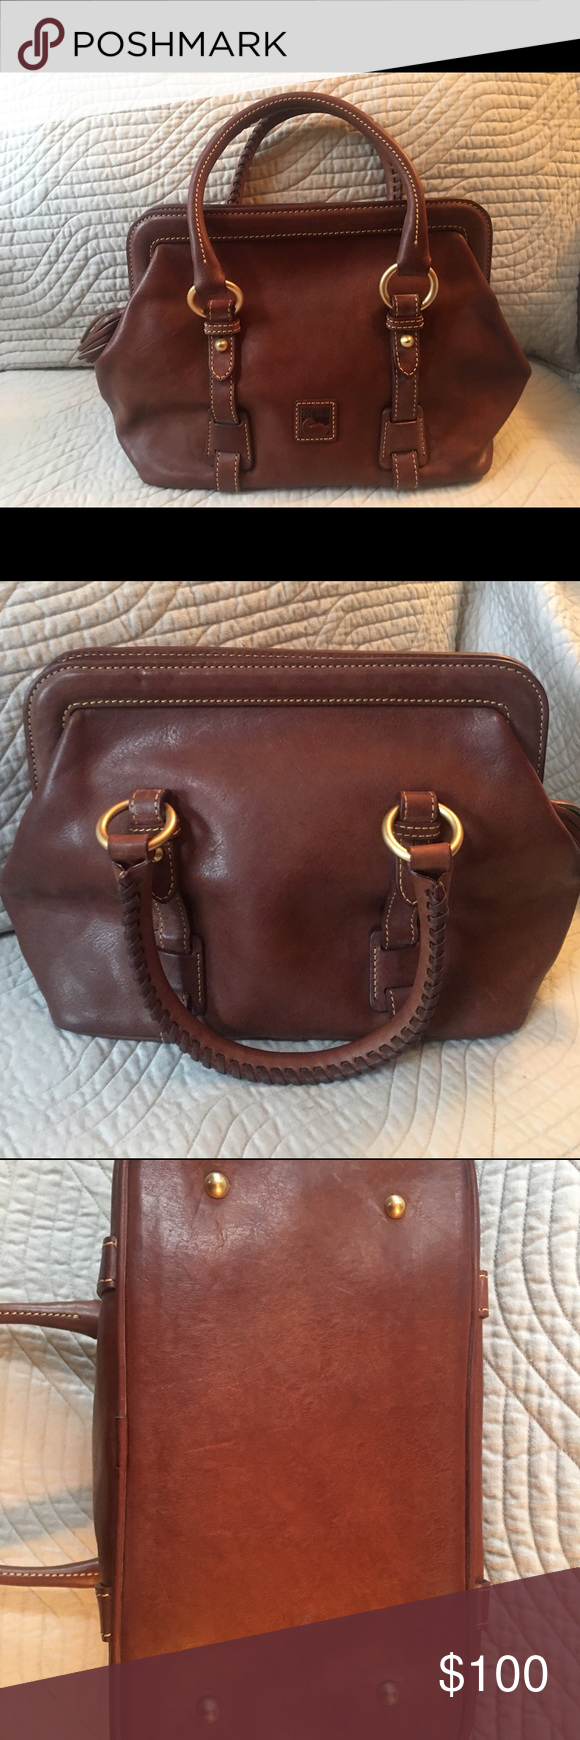 2ddc194fe7e2f1 Dooney and Burke just like new purse Small Mitchell leather purse. Please  note this purse style does not come with a shoulder strap.